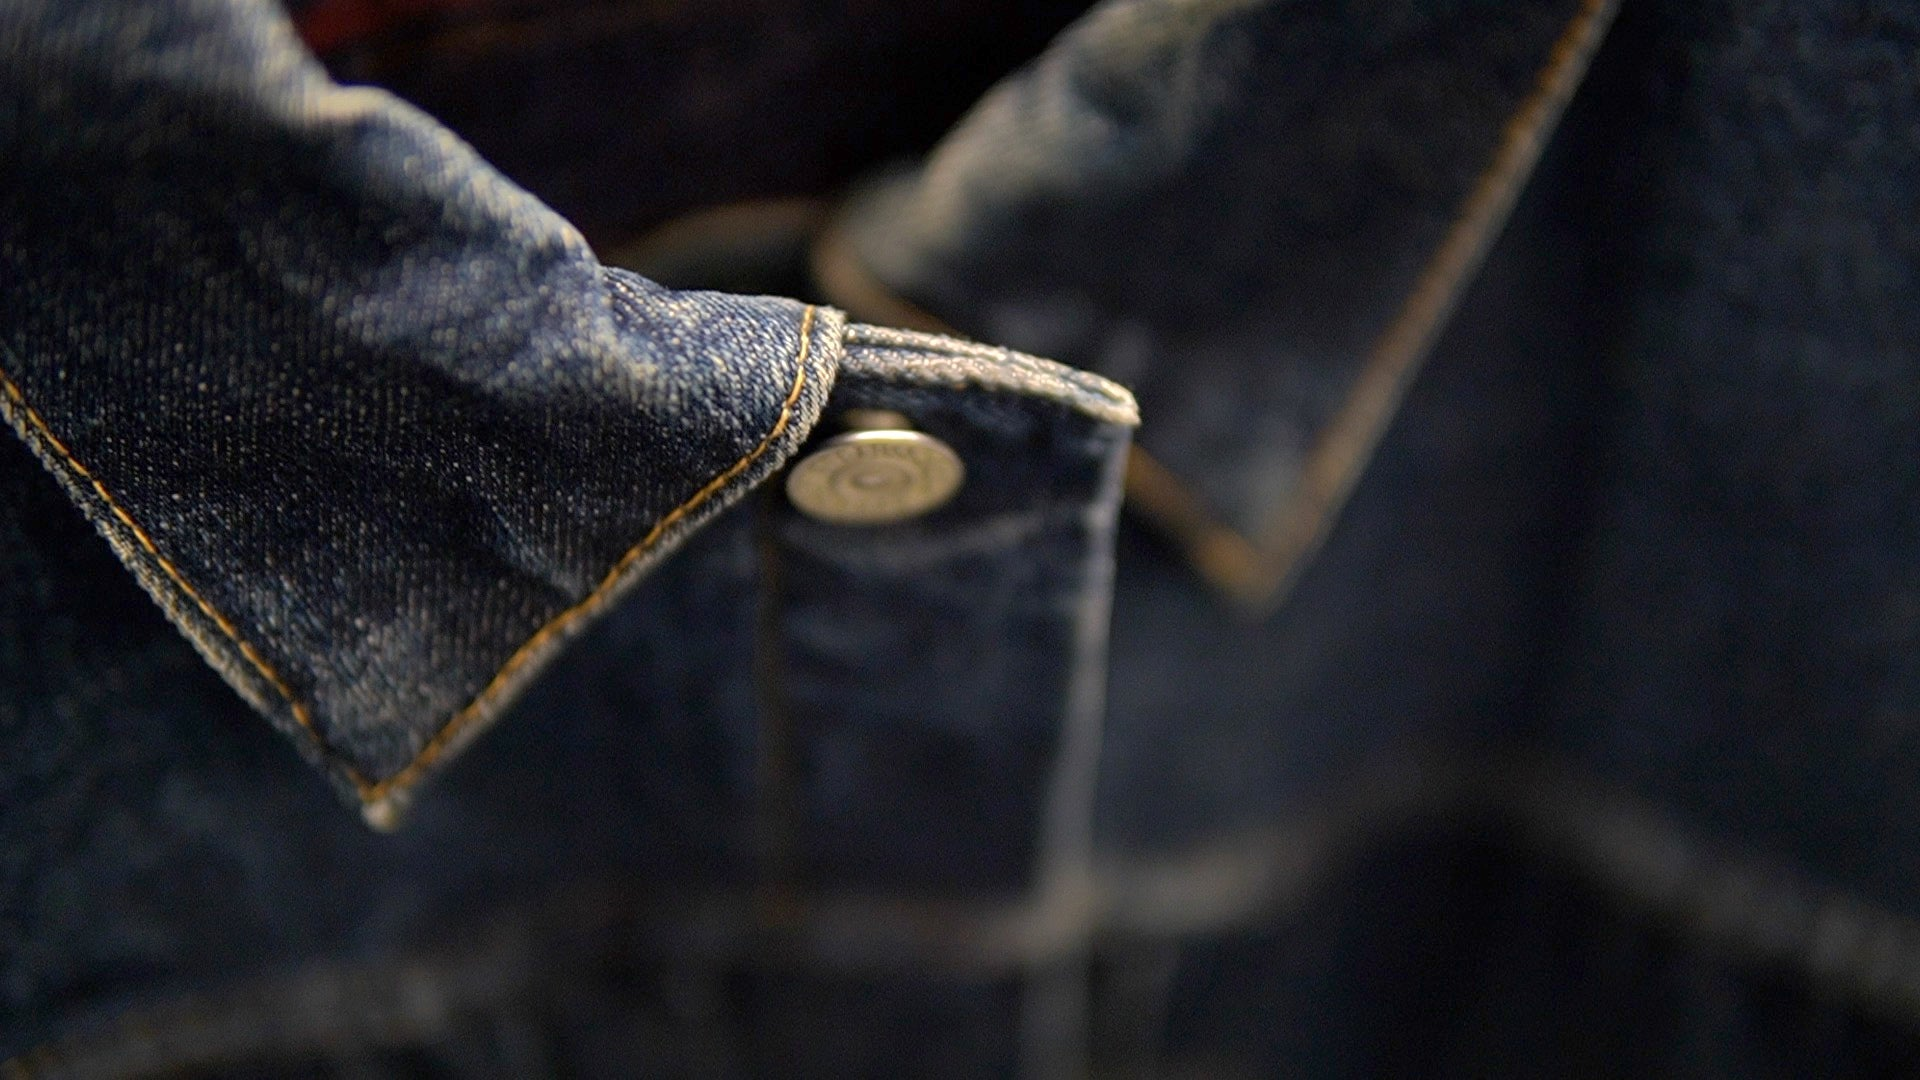 VINTAGE DENIM JACKETS TYPE Ⅰ . TYPE Ⅱ . TYPE Ⅲ